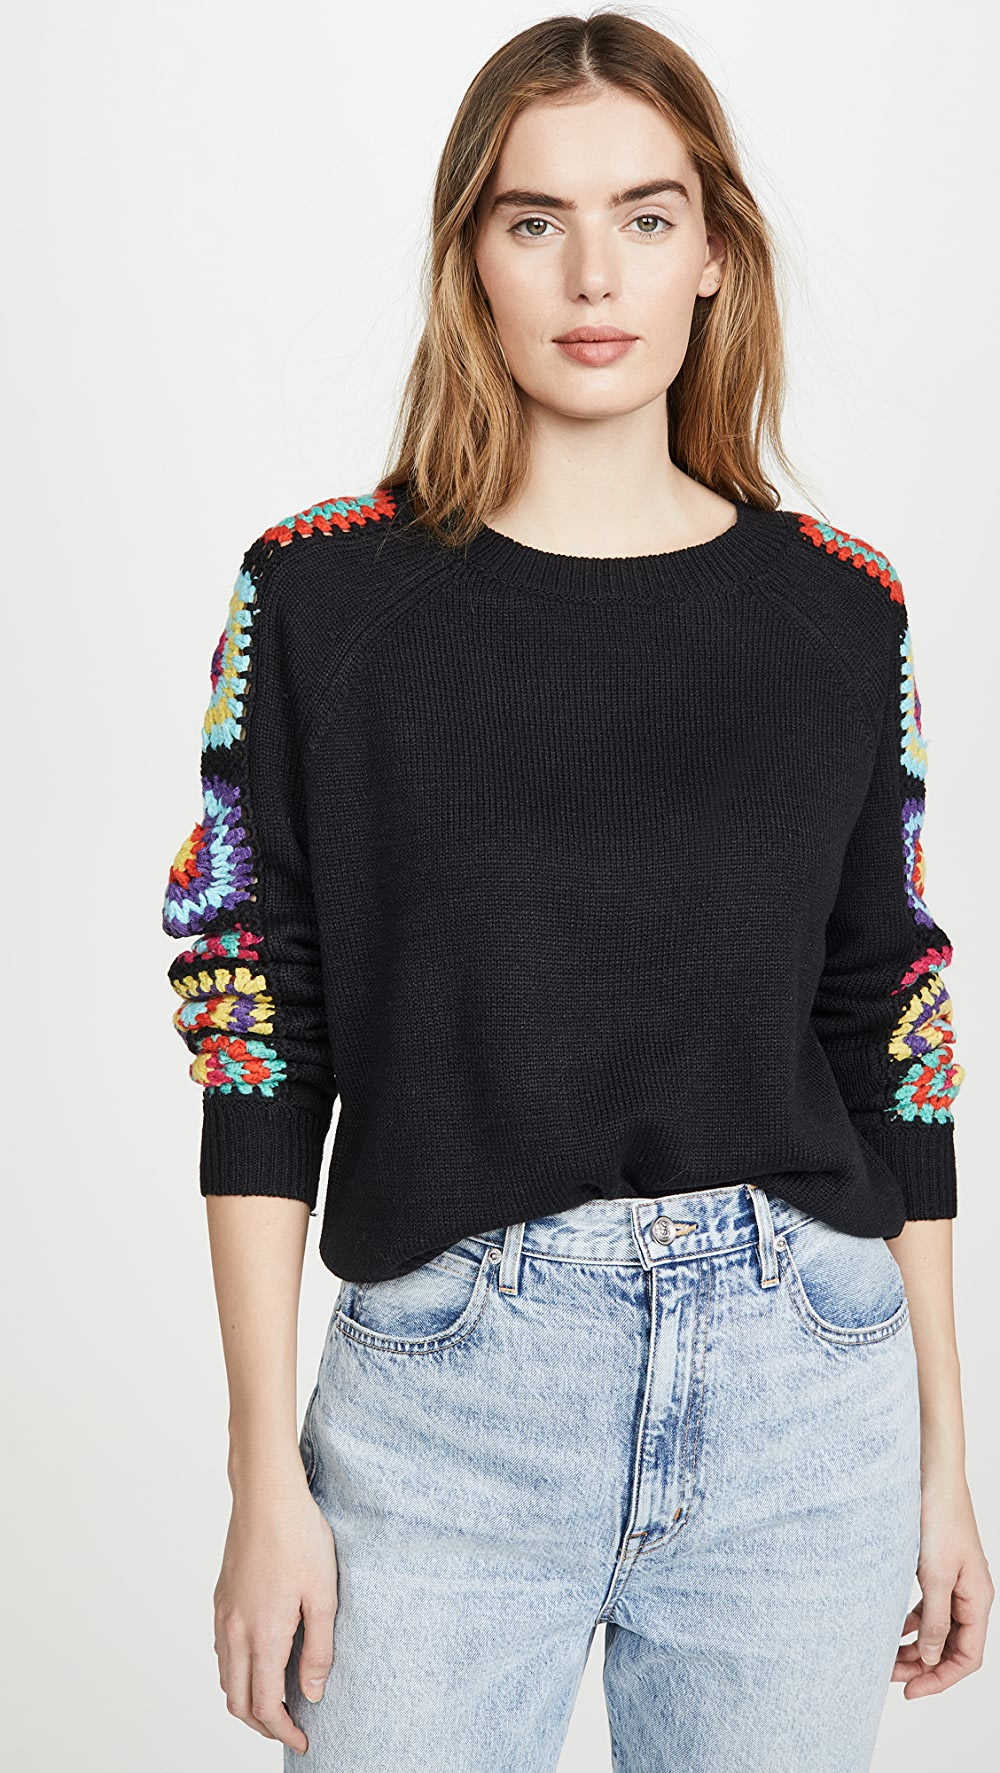 Able Dna - Black Crochet Sweater Strong Resistance To Heat And Hard Wearing